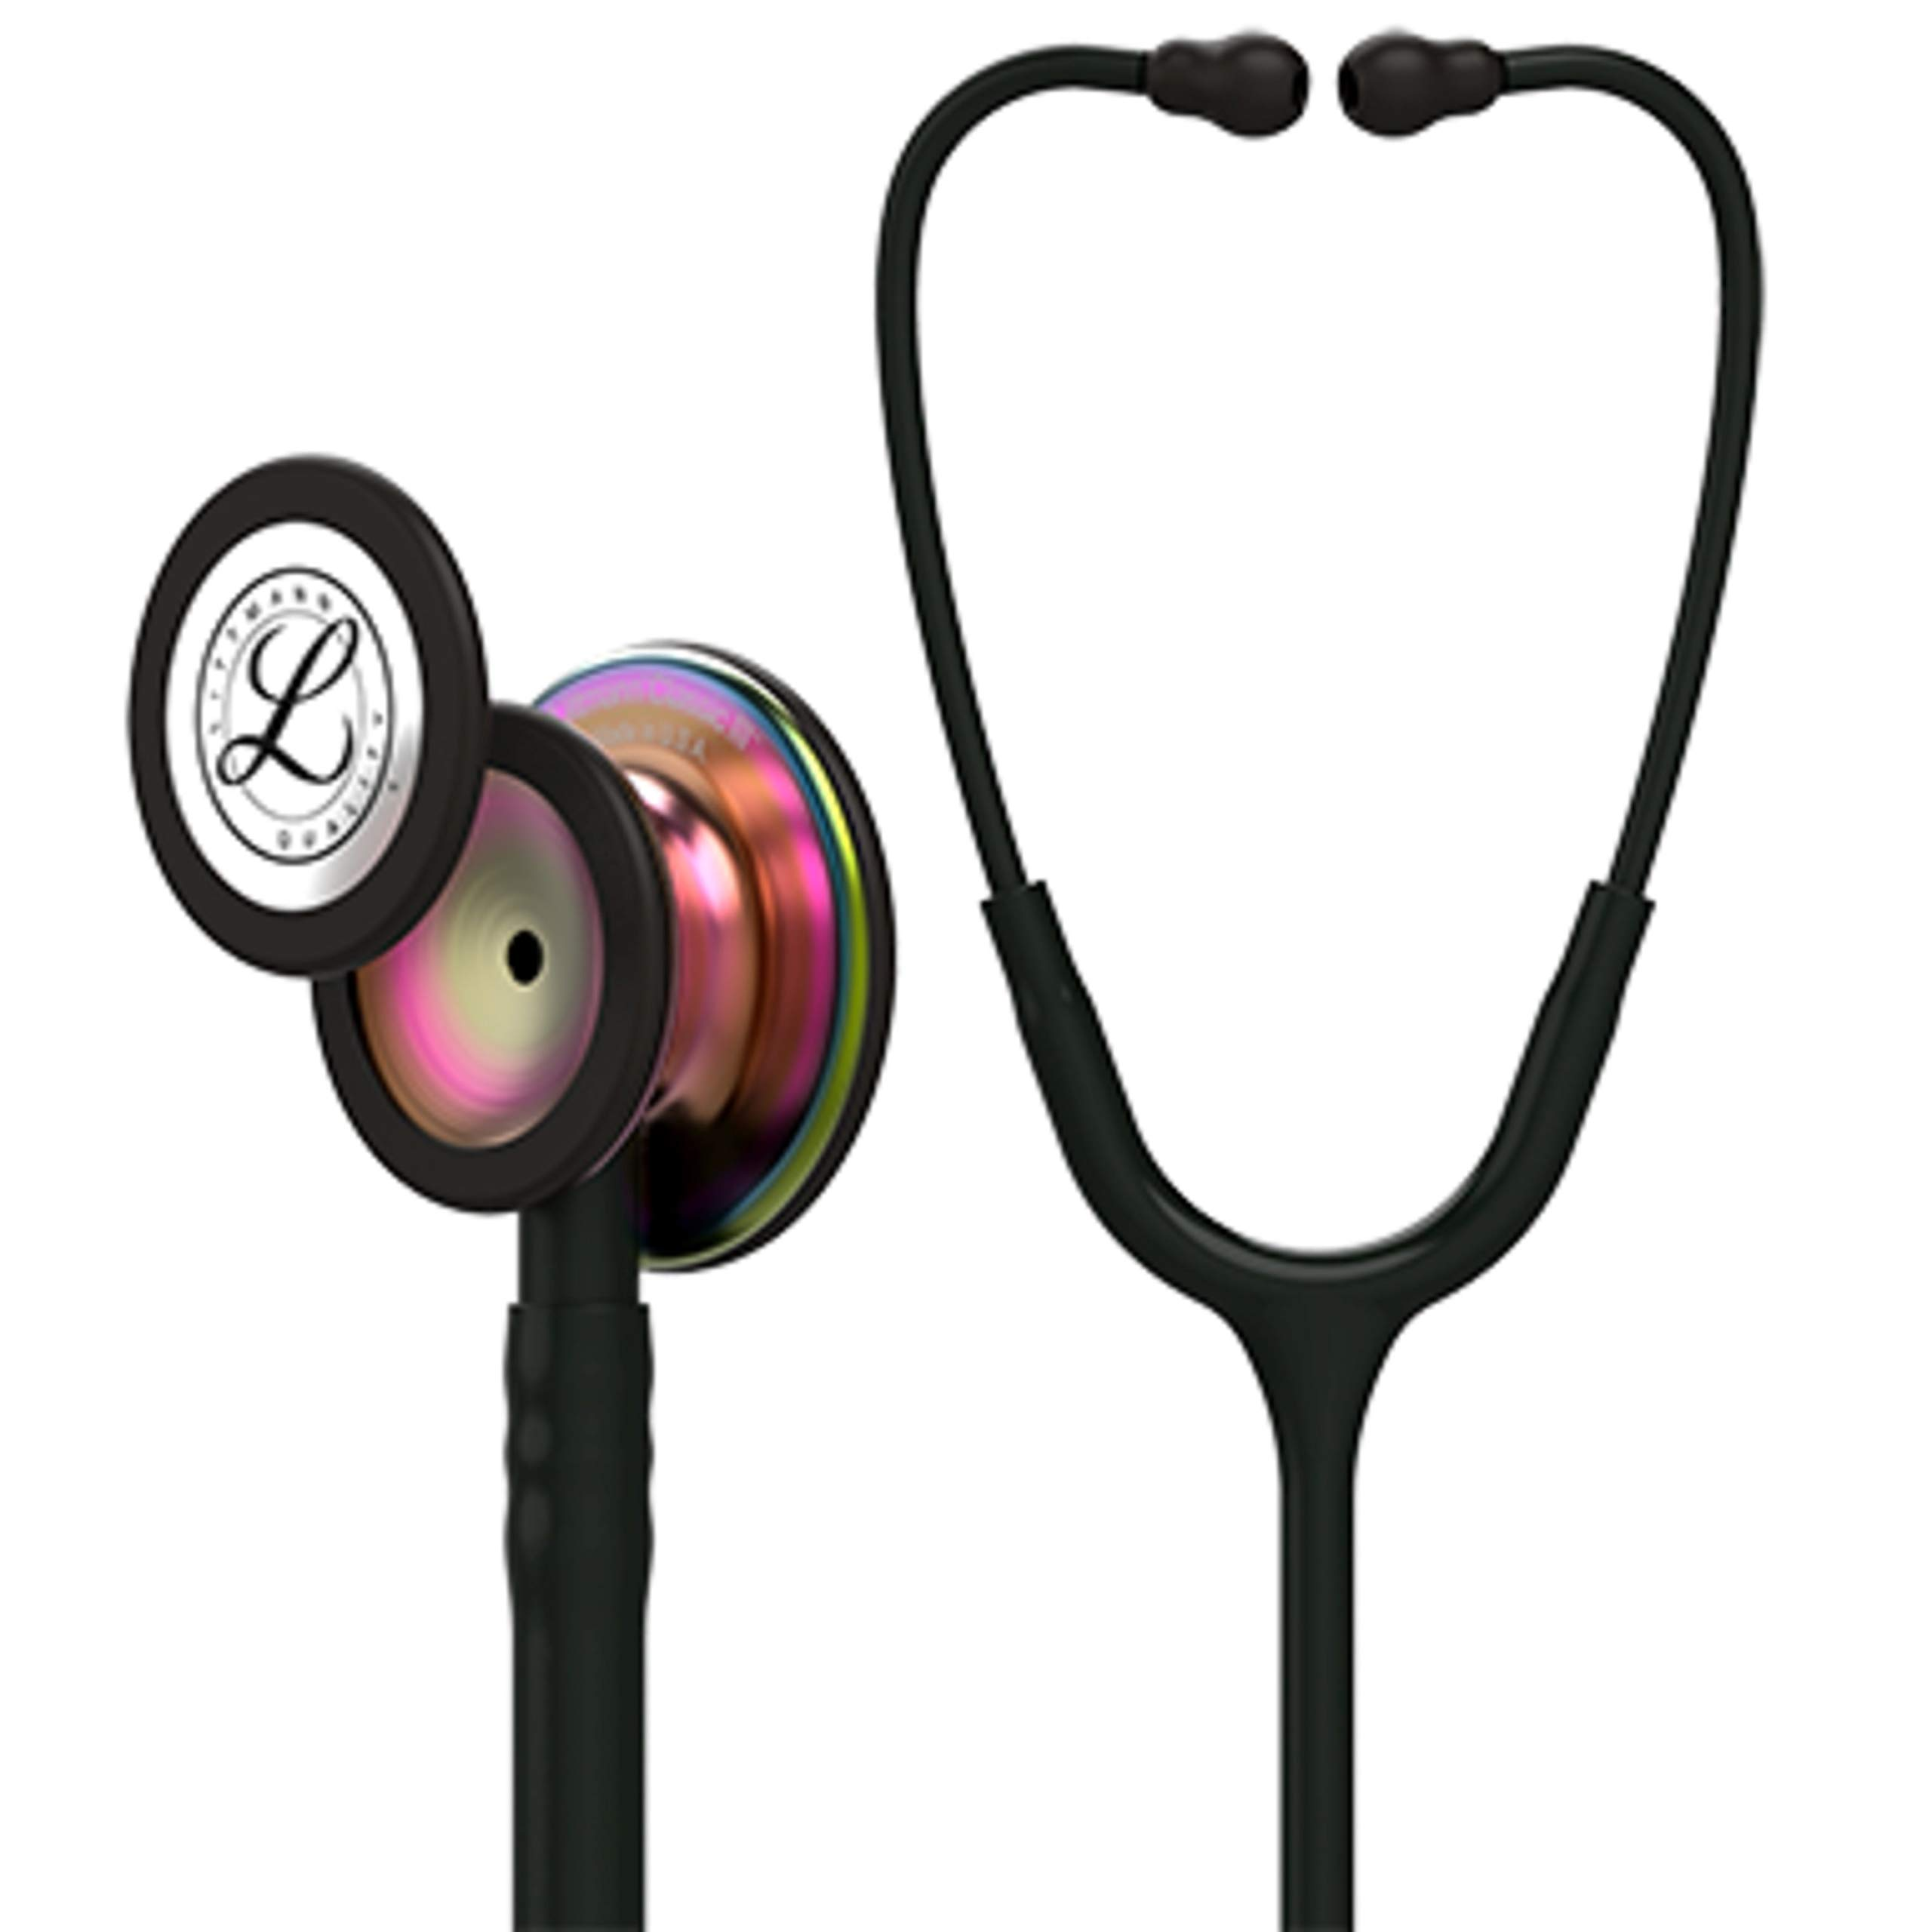 3M Littmann  Classic III Monitoring Stethoscope, Rainbow-Finish Chestpiece, black stem and headset, Black Tube, 27 inch, 5870